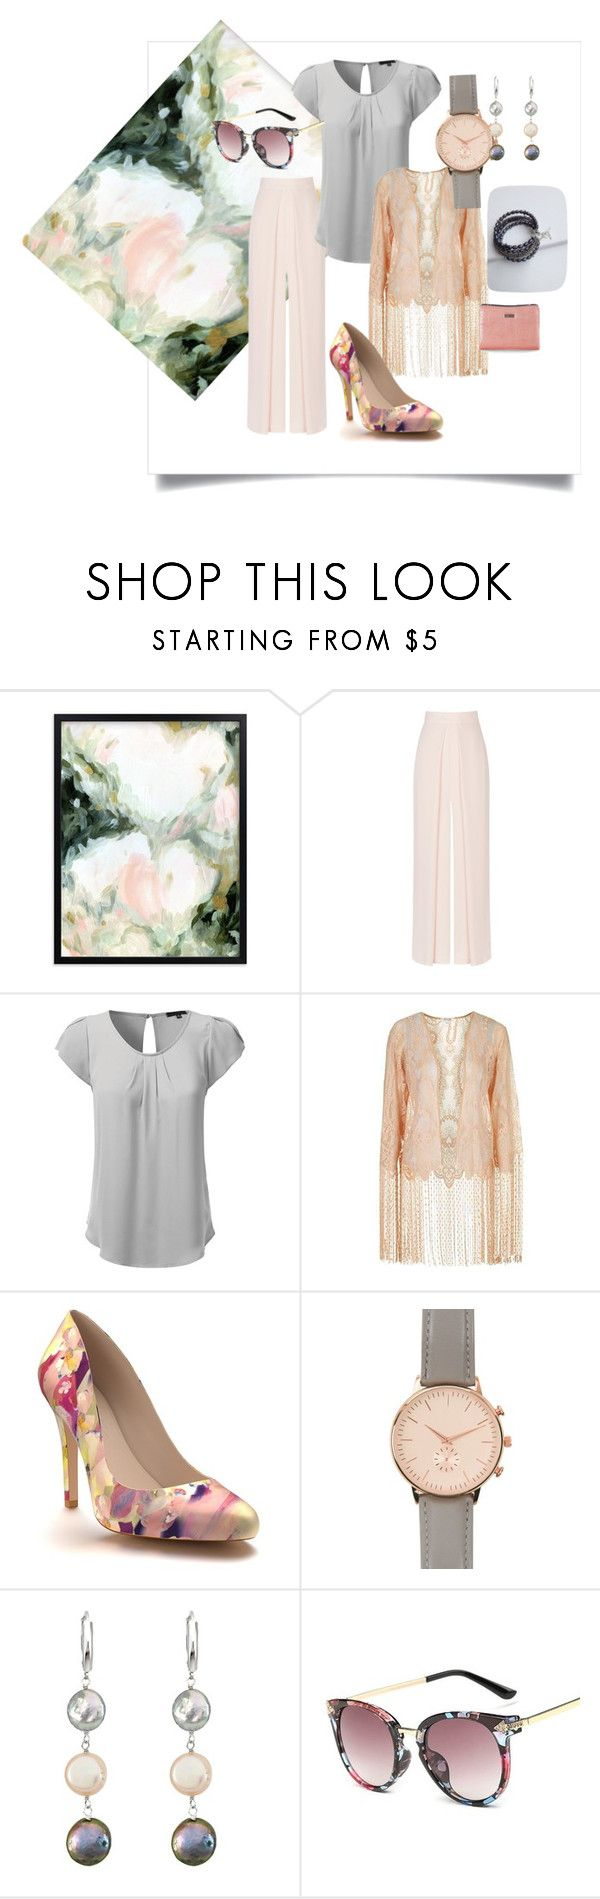 """Pink is the Word!"" by judyrstinson ❤ liked on Polyvore featuring Coast, Topshop, Shoes of Prey, Anjali, New Look and DaVonna"